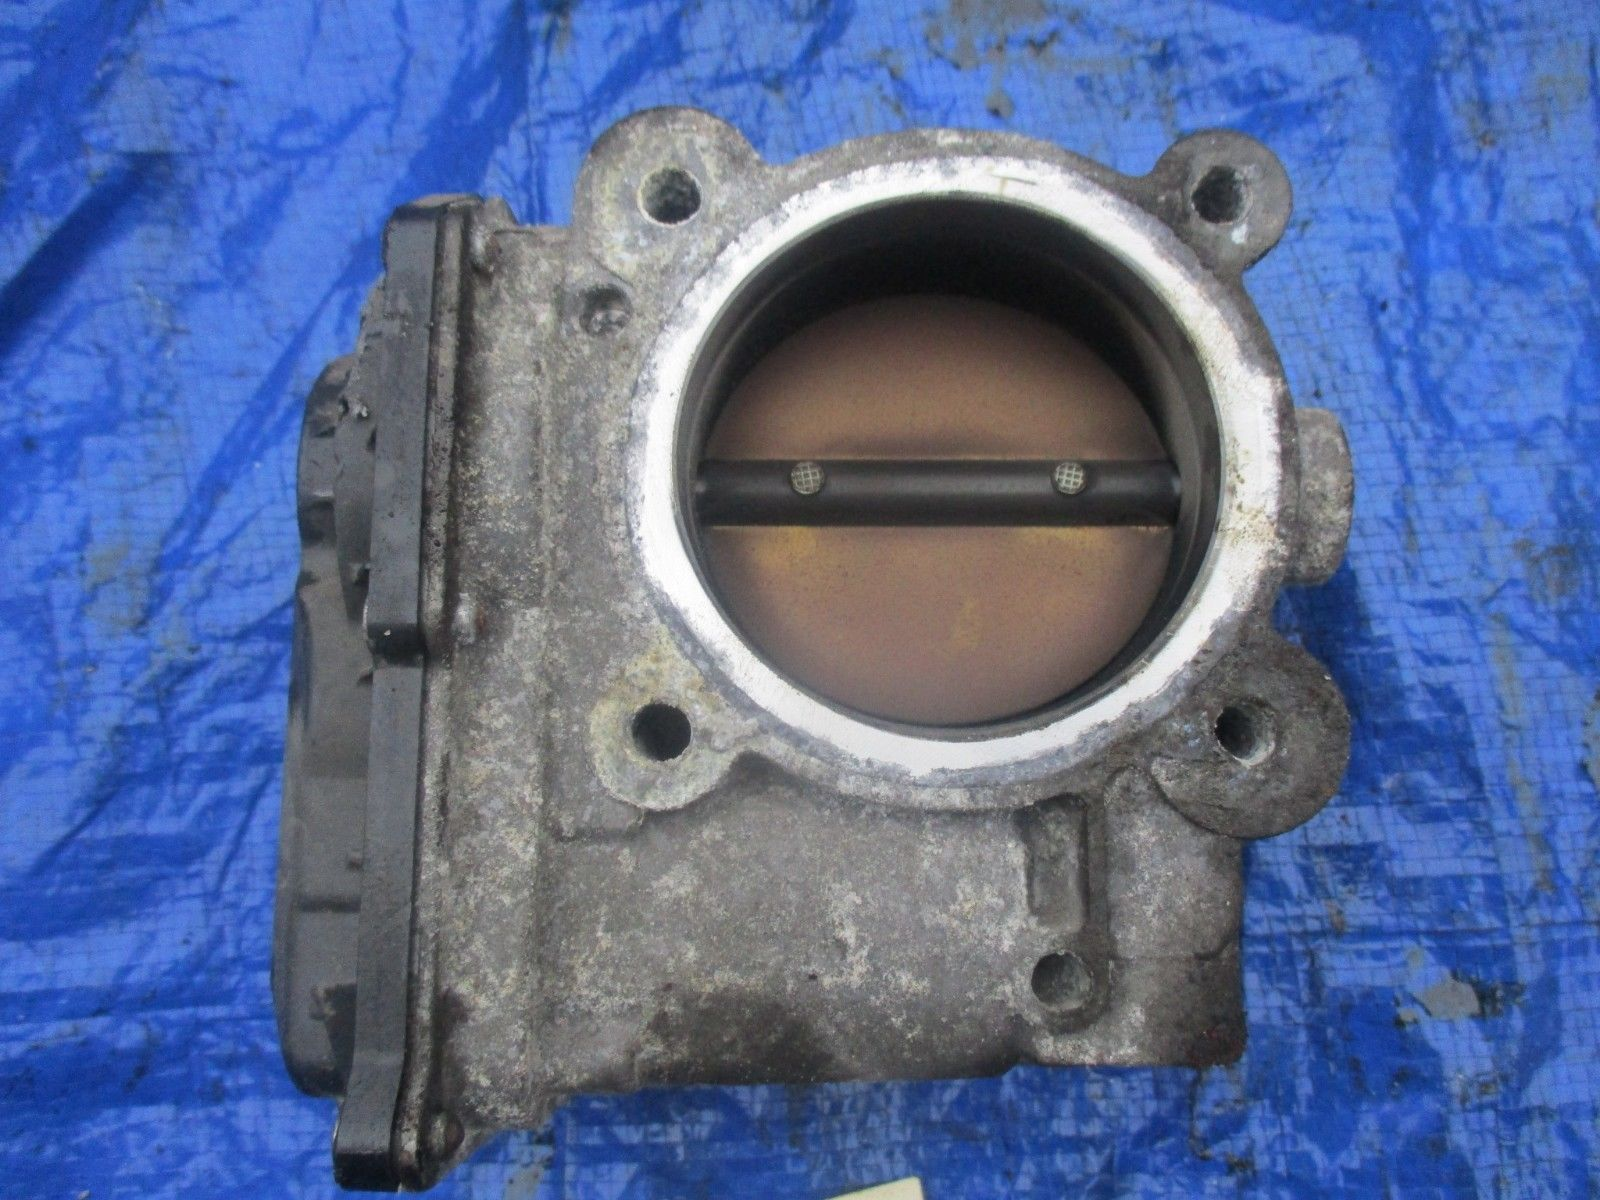 2008 Volvo XC70 3.2 electronic engine throttle body assembly 6G9N-9F991 AB